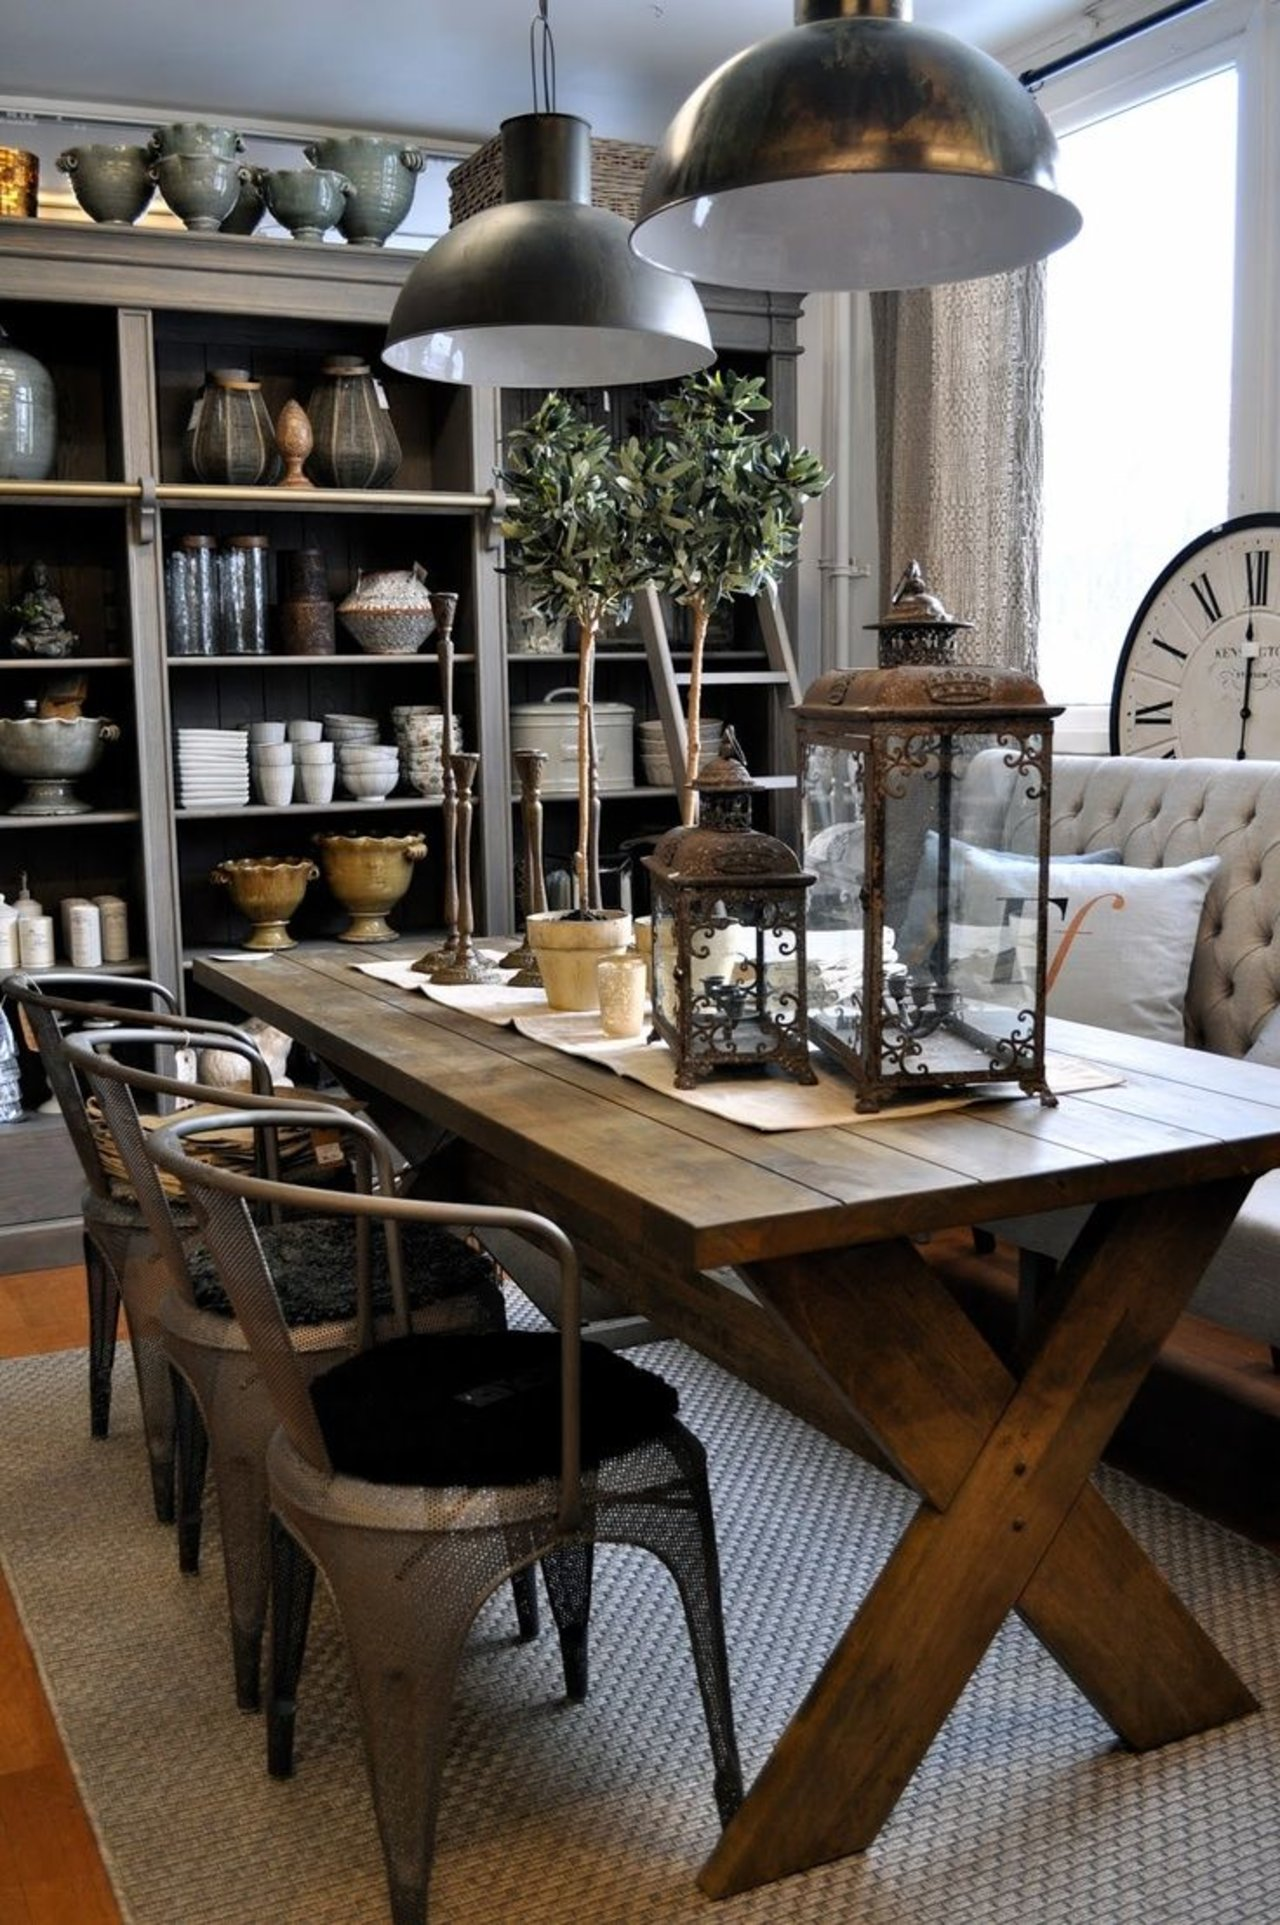 Real/Deal/Steal: An Elegant, Rustic Dining Room - The Accent™